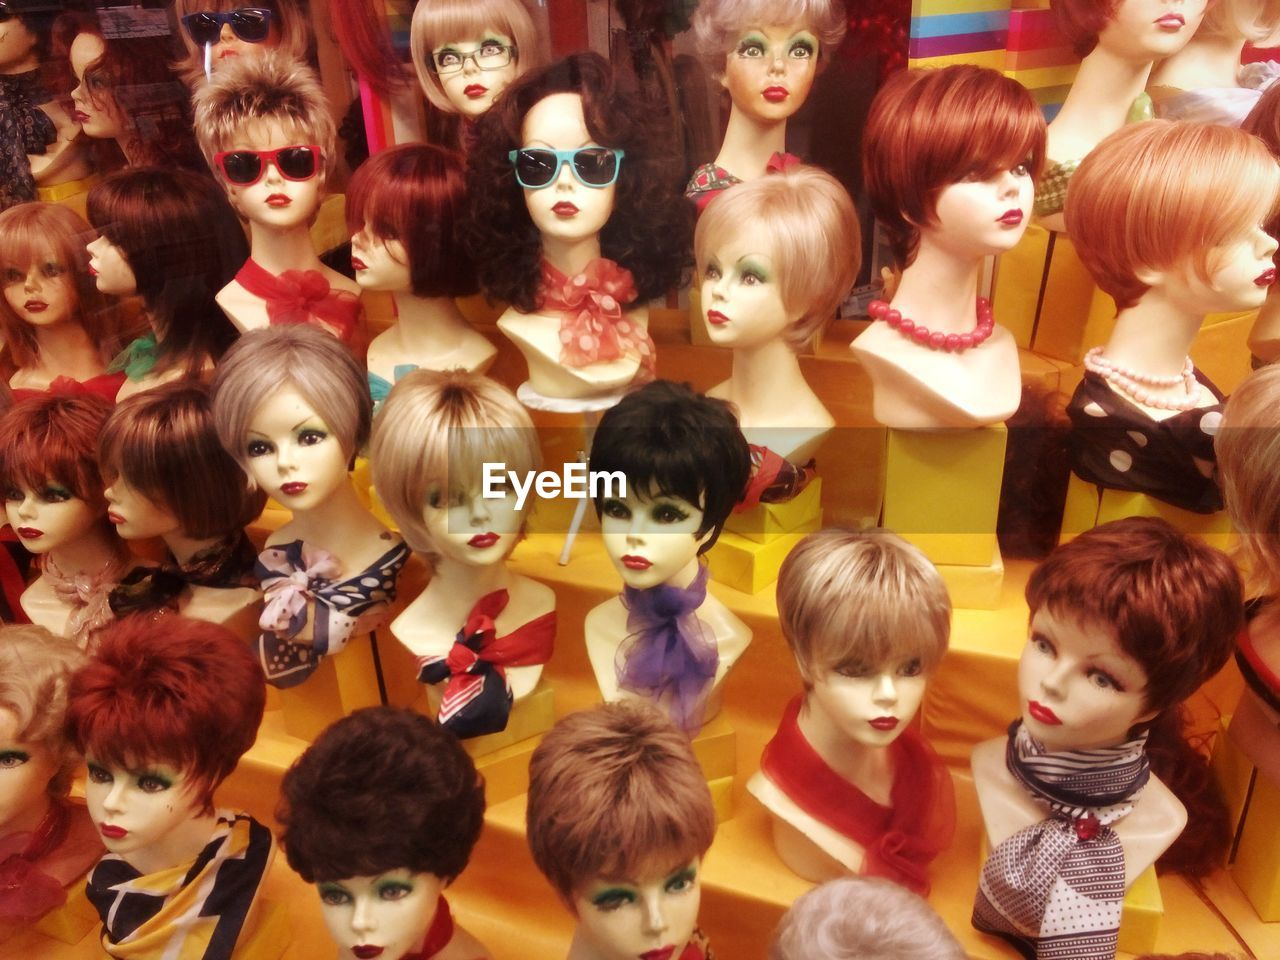 childhood, real people, child, women, variation, choice, girls, indoors, toy, portrait, group of people, representation, female likeness, looking at camera, boys, human representation, large group of objects, lifestyles, bangs, hairstyle, innocence